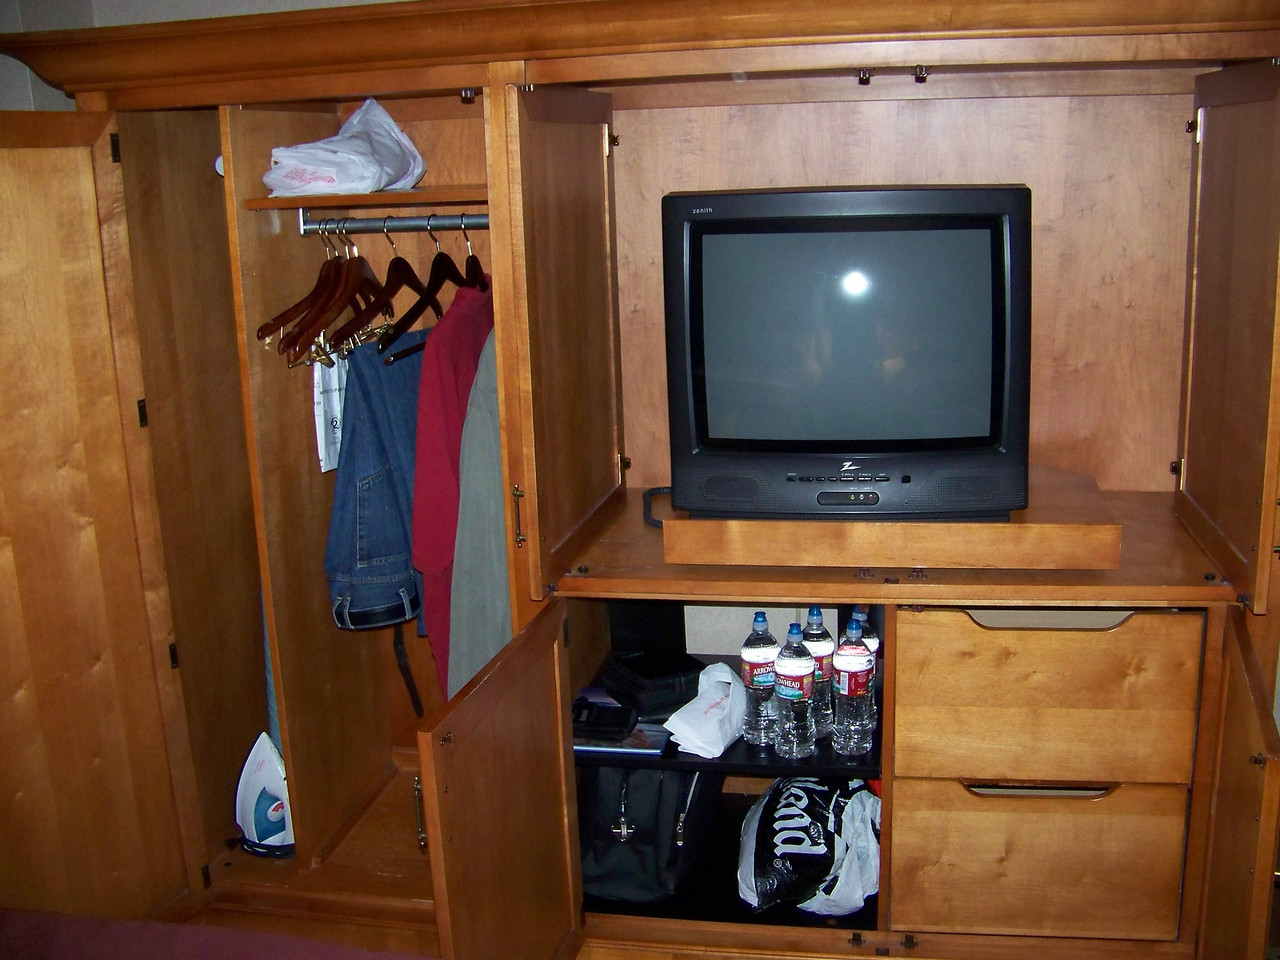 """The armoire is the only closet space, and also holds the TV.  The set in this room was disappointingly small--compare it to the TV in <b><a target=""""_new"""" href=""""http://triesch.smugmug.com/Reno/2007-April-15-21/3678020_RhX5ZJ#!i=210312690&k=WfBMtTm"""">this shot from one of our previous stays at Harrah's.</a></b> [Reno]"""